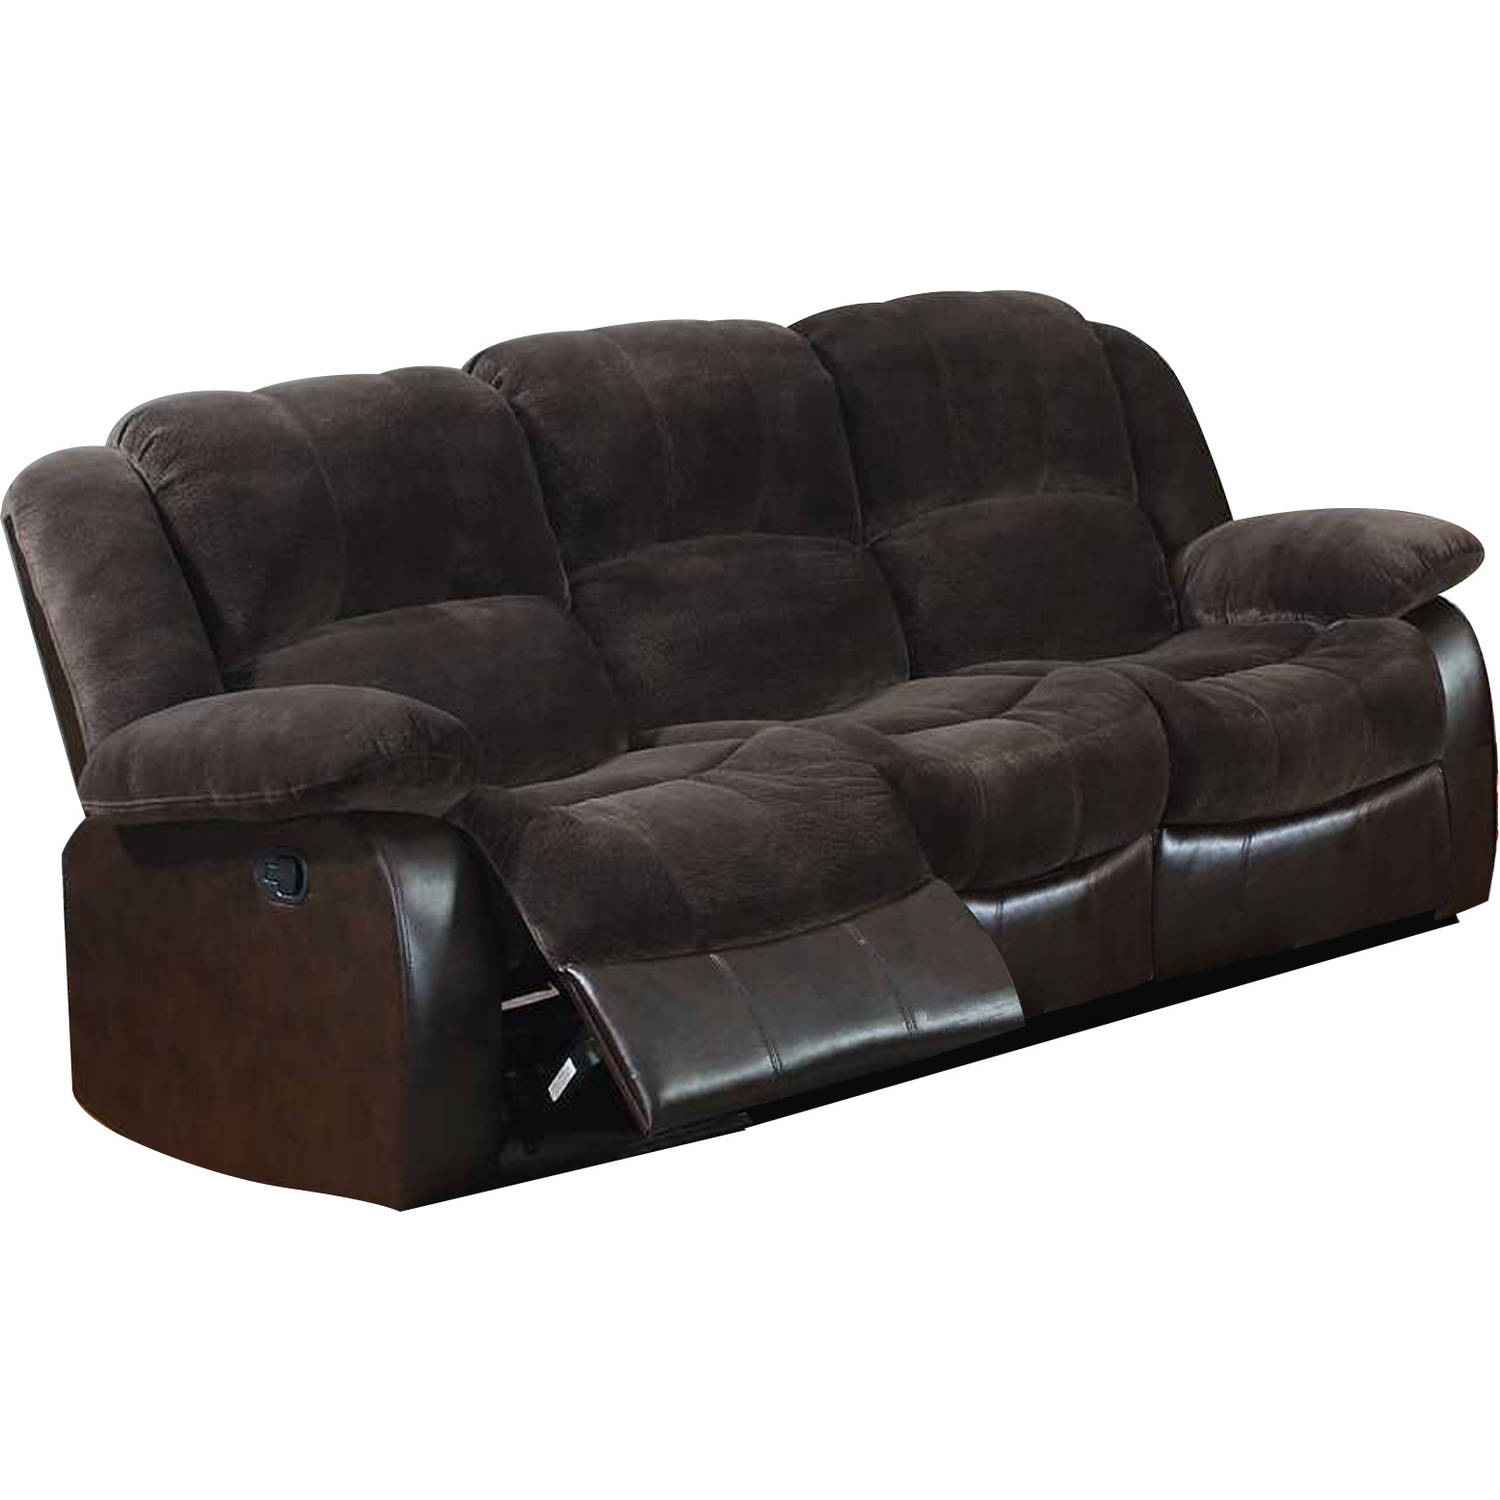 Leonel Signature Aiden Champion & PU Motion Sofa (2 reclining seats)